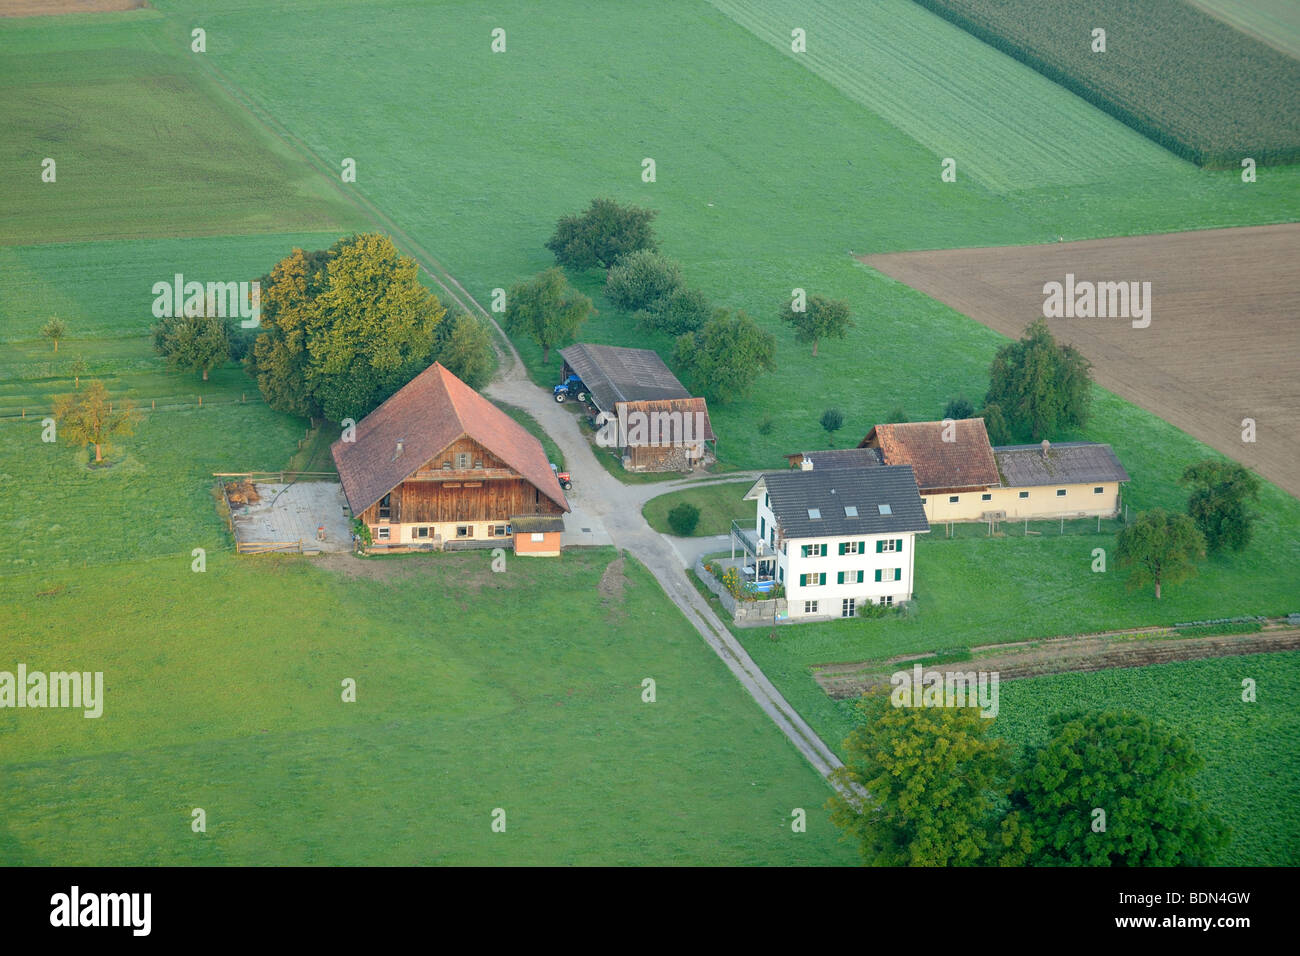 A typical Swiss farm from above, Buttisholz, Switzerland, Europe - Stock Image